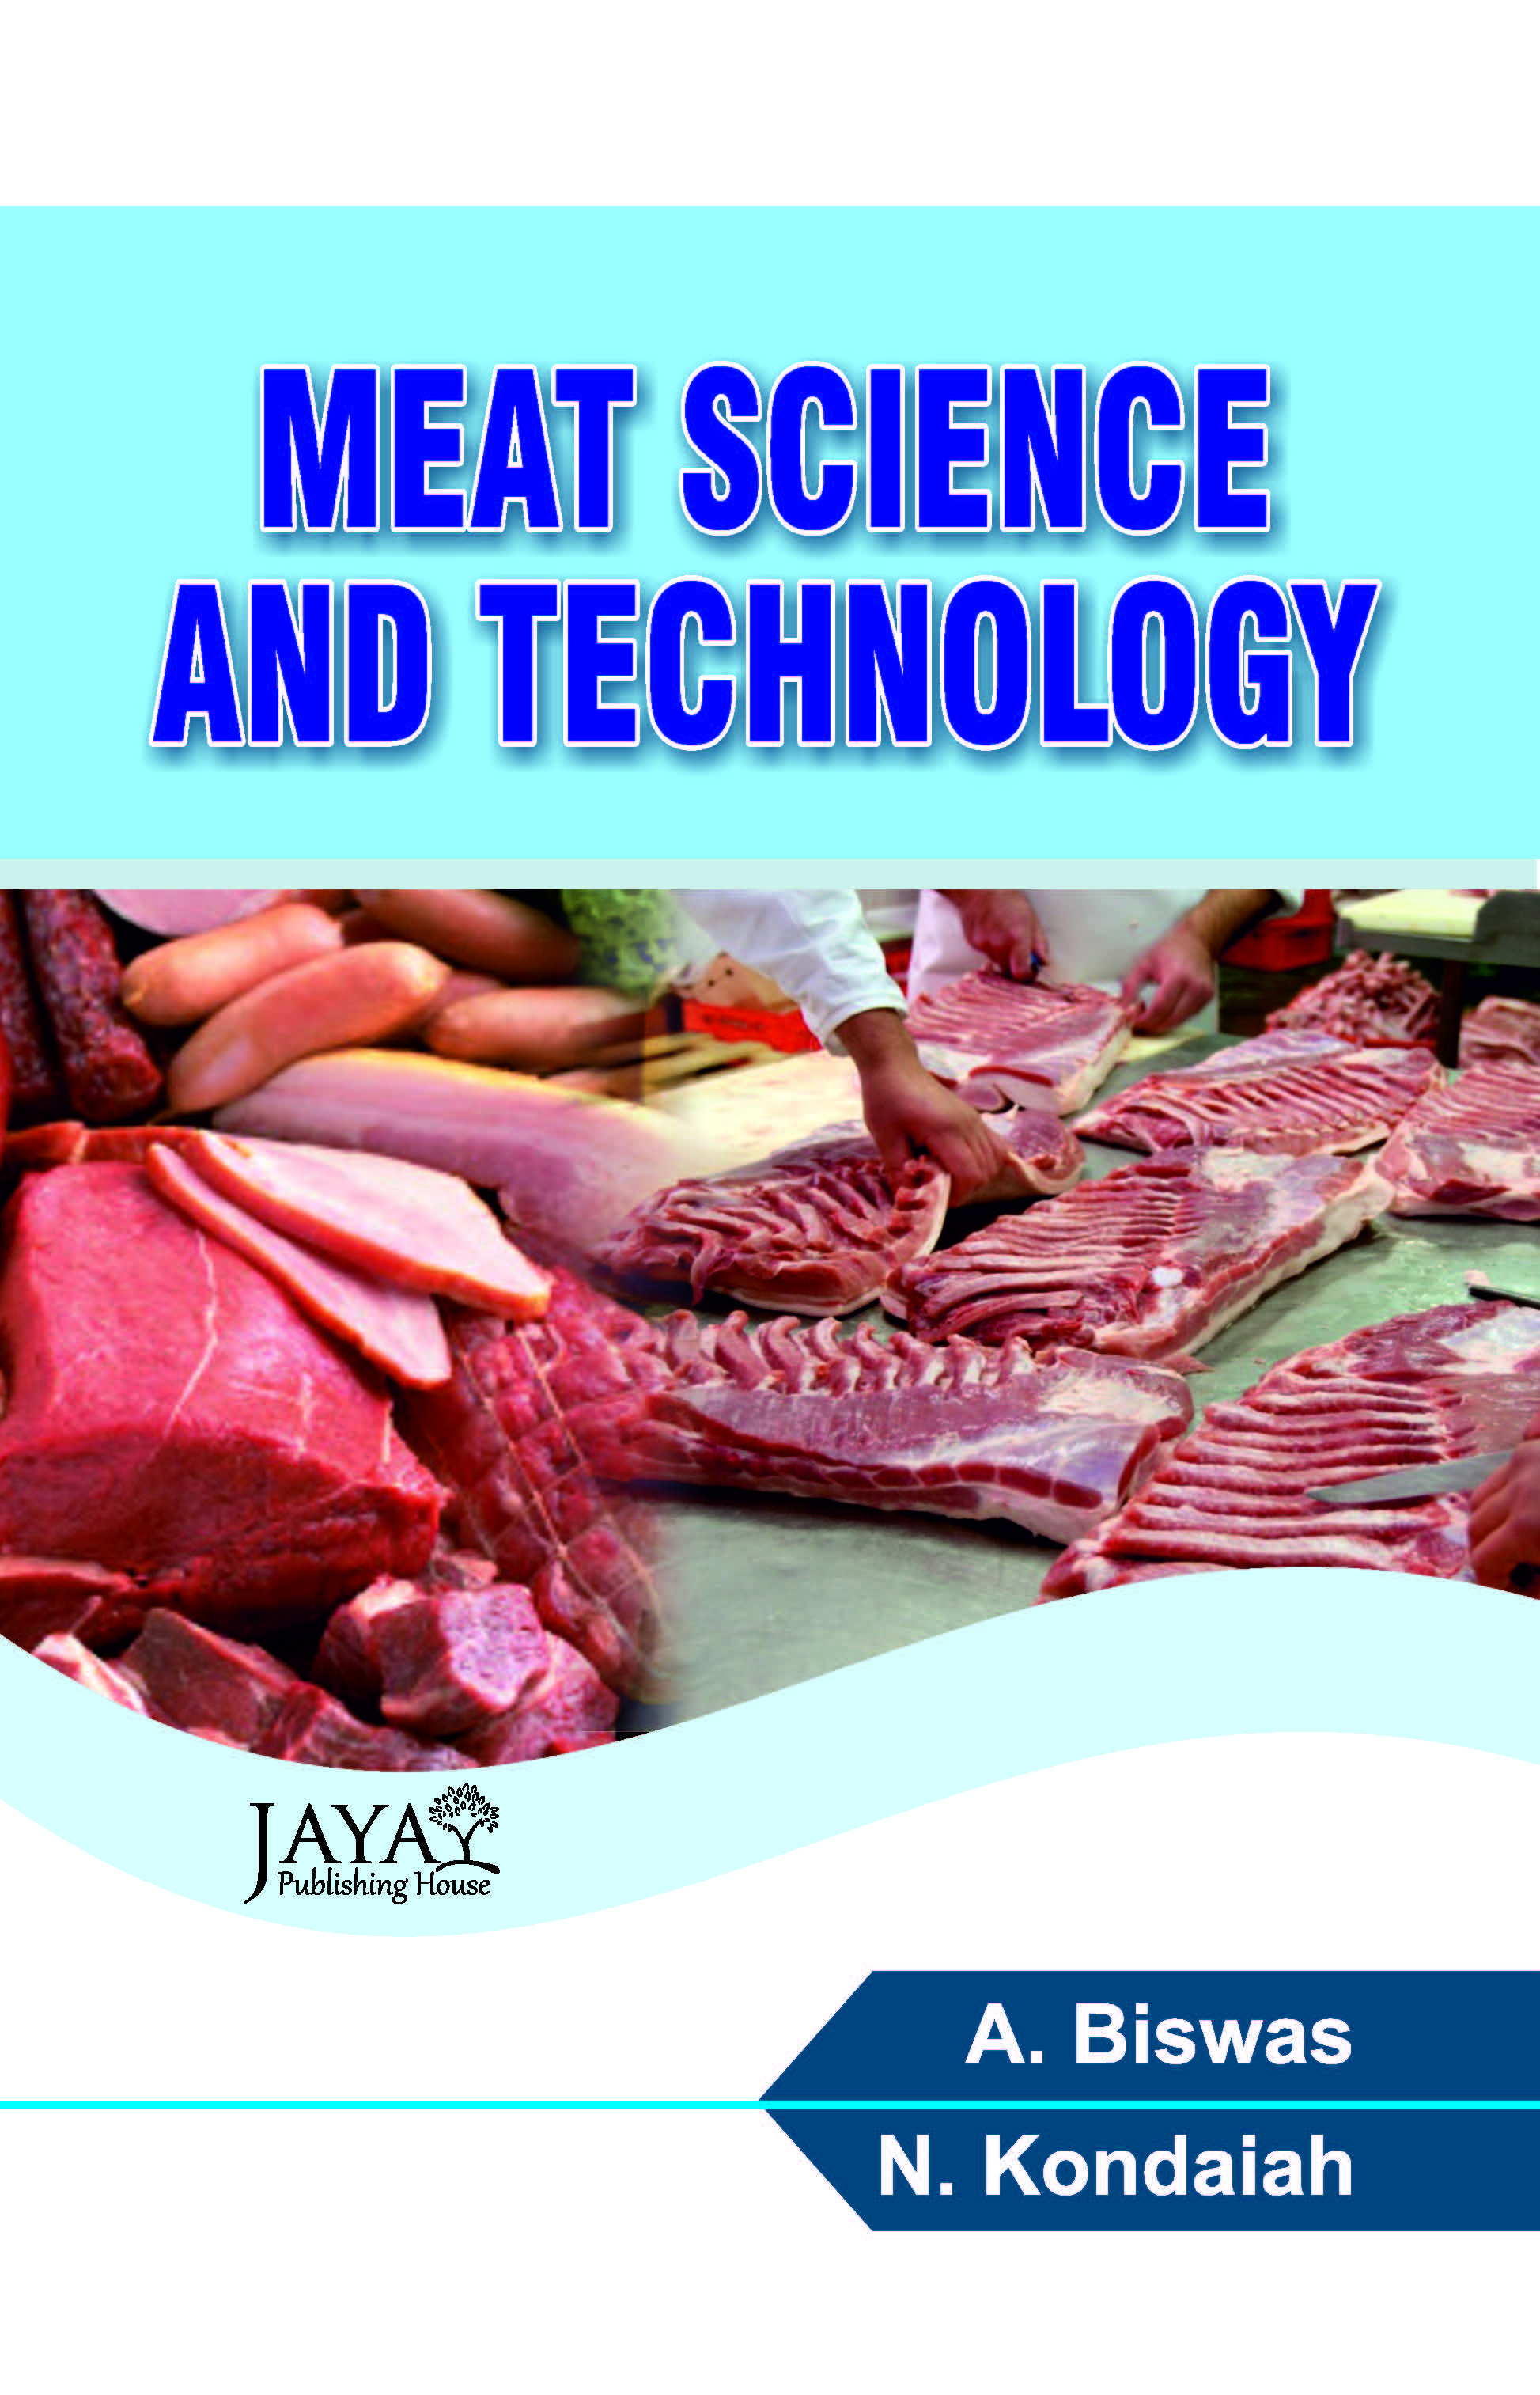 Meat Science and technology